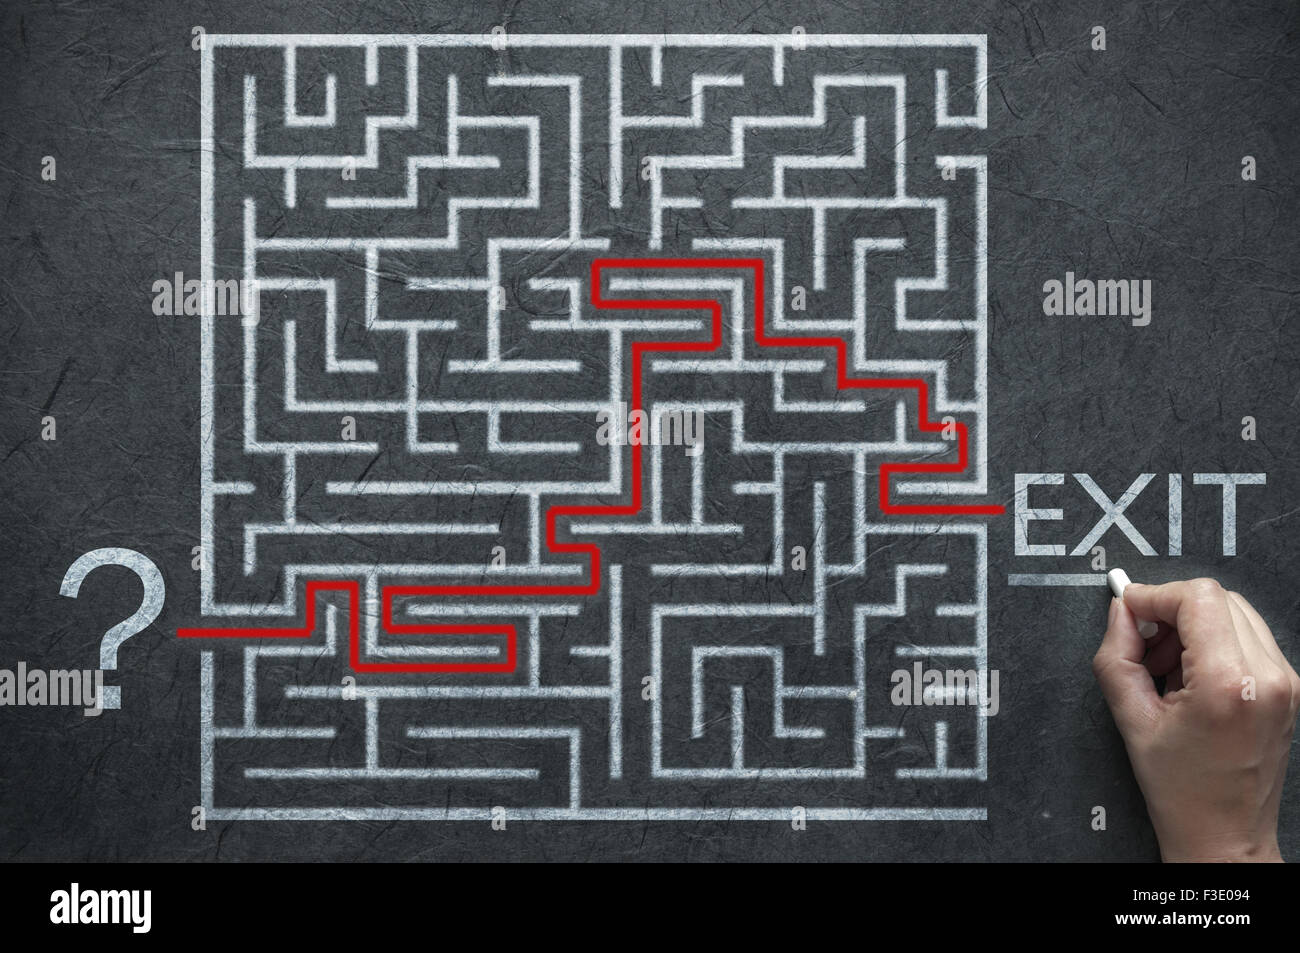 Maze path solution leading from start point to exit sign - Stock Image